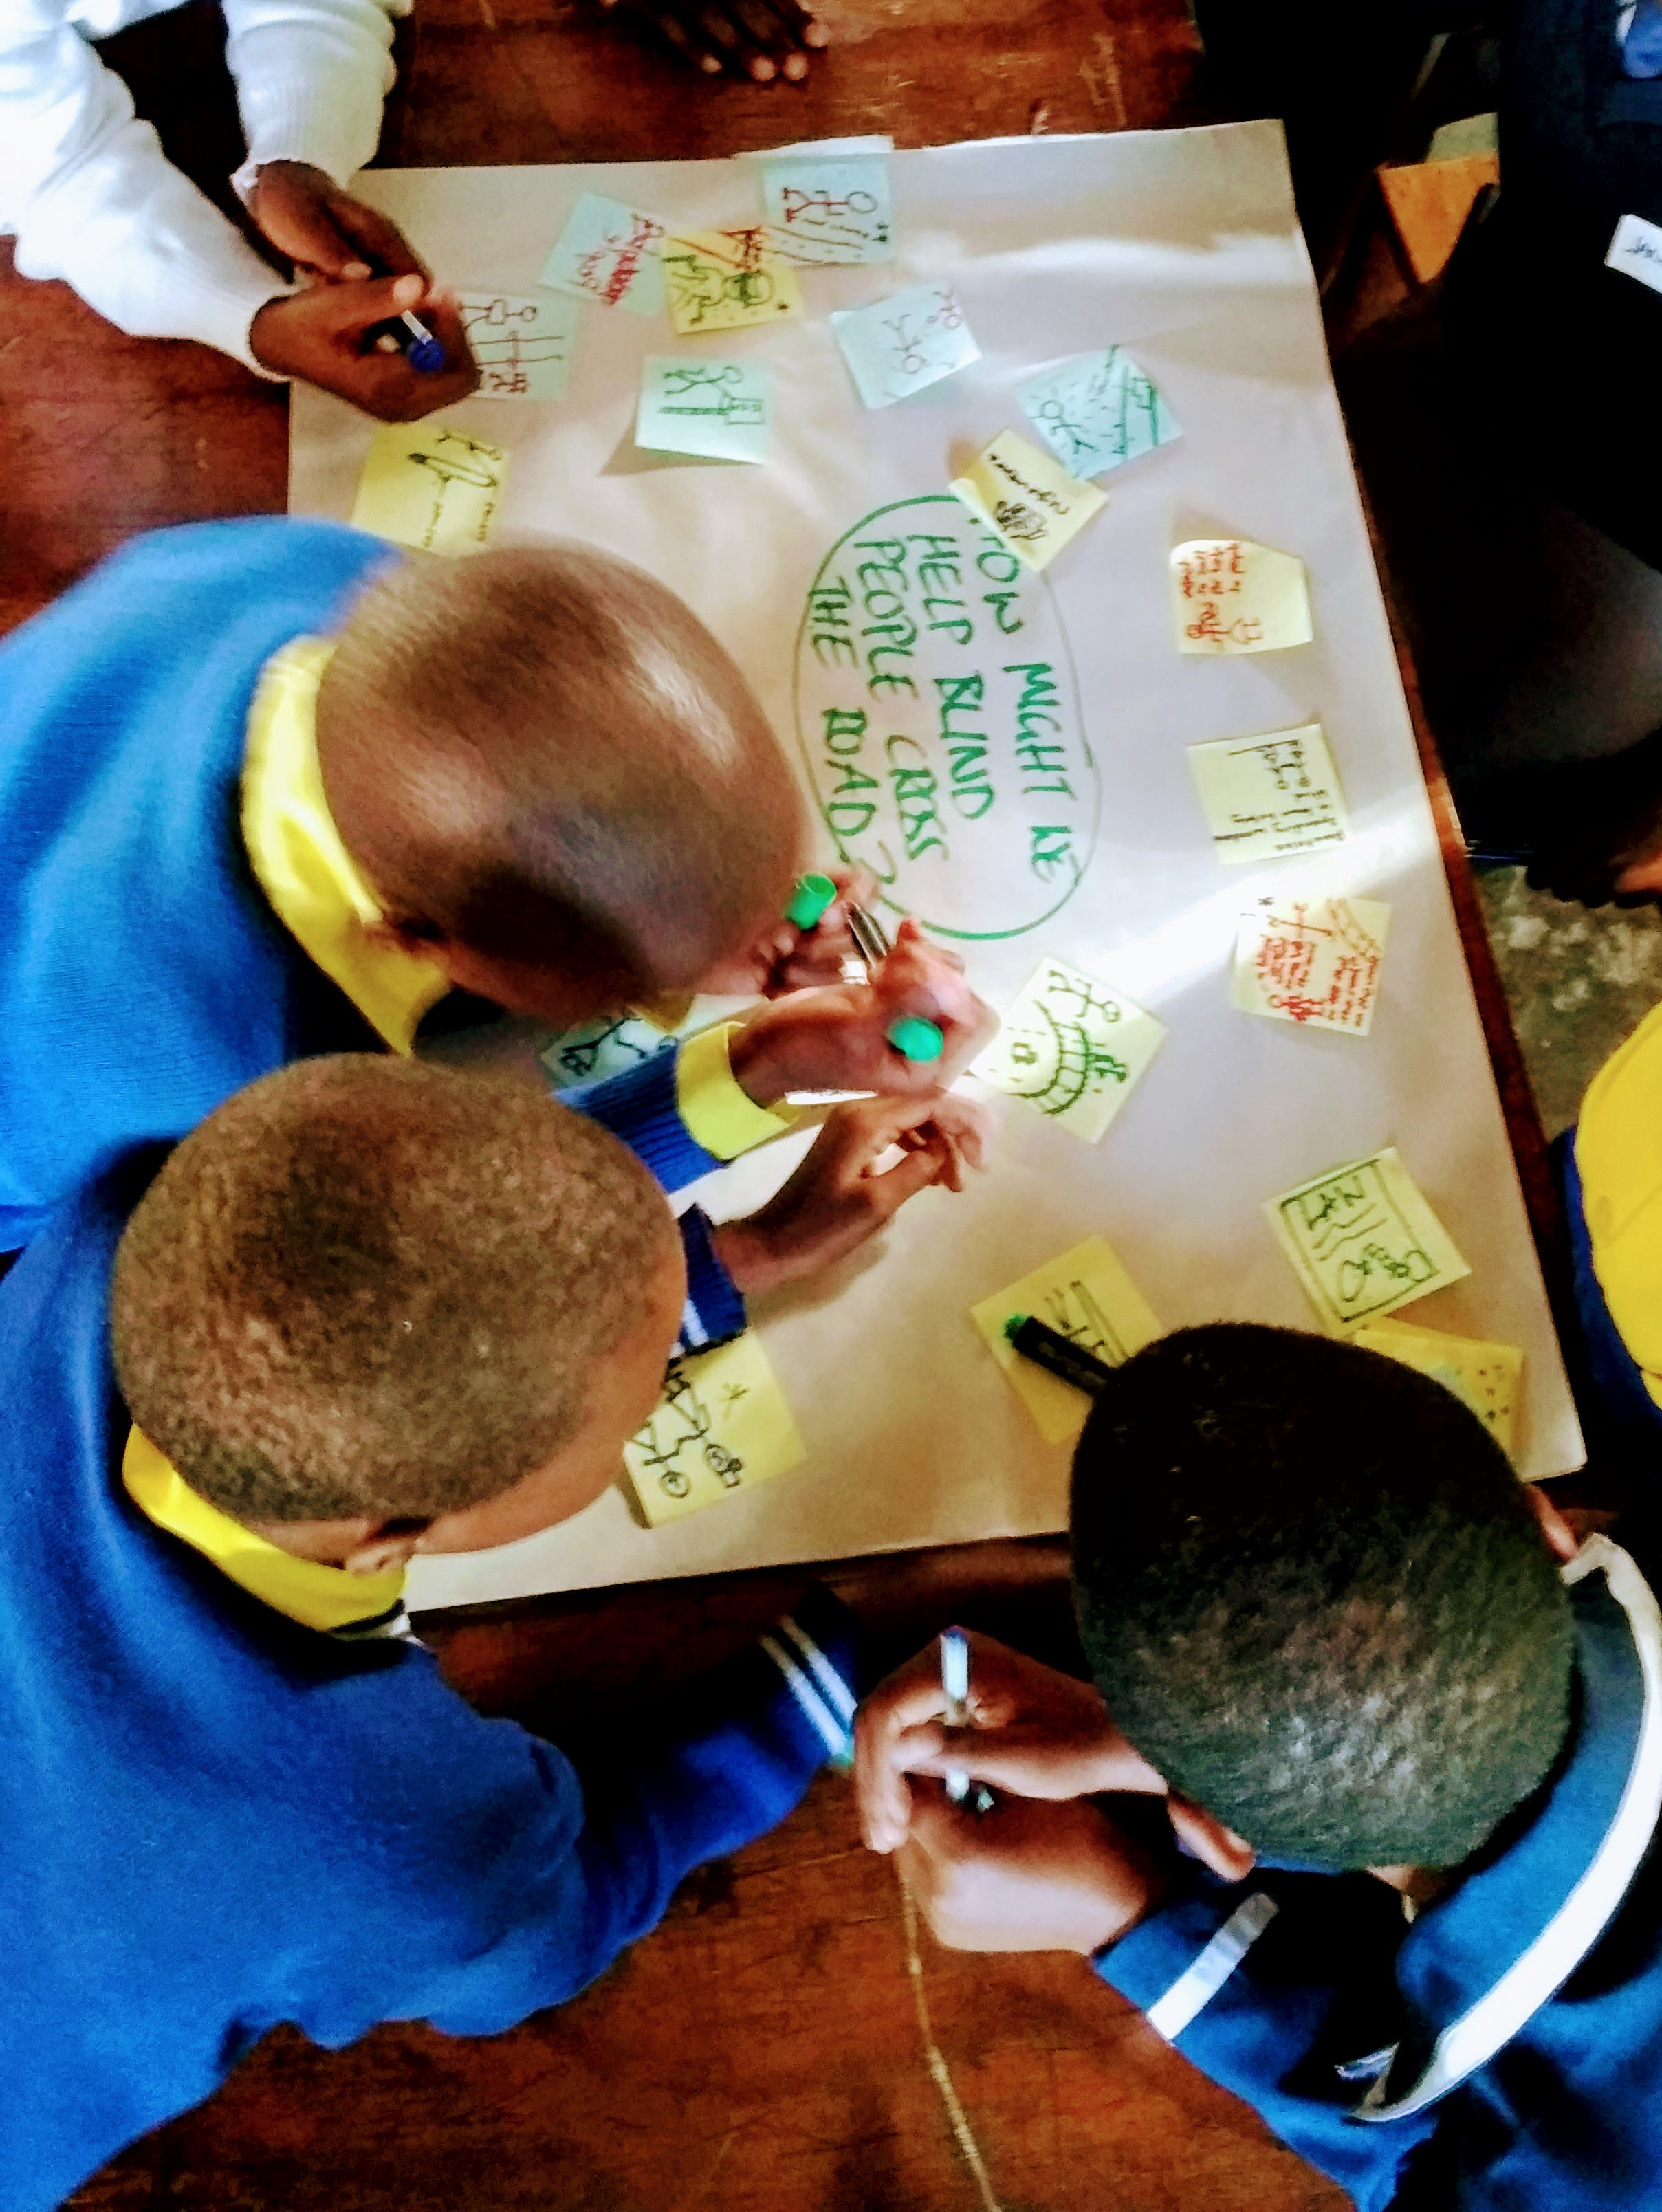 The children brainstorming ideas at our workshop held earlier this month